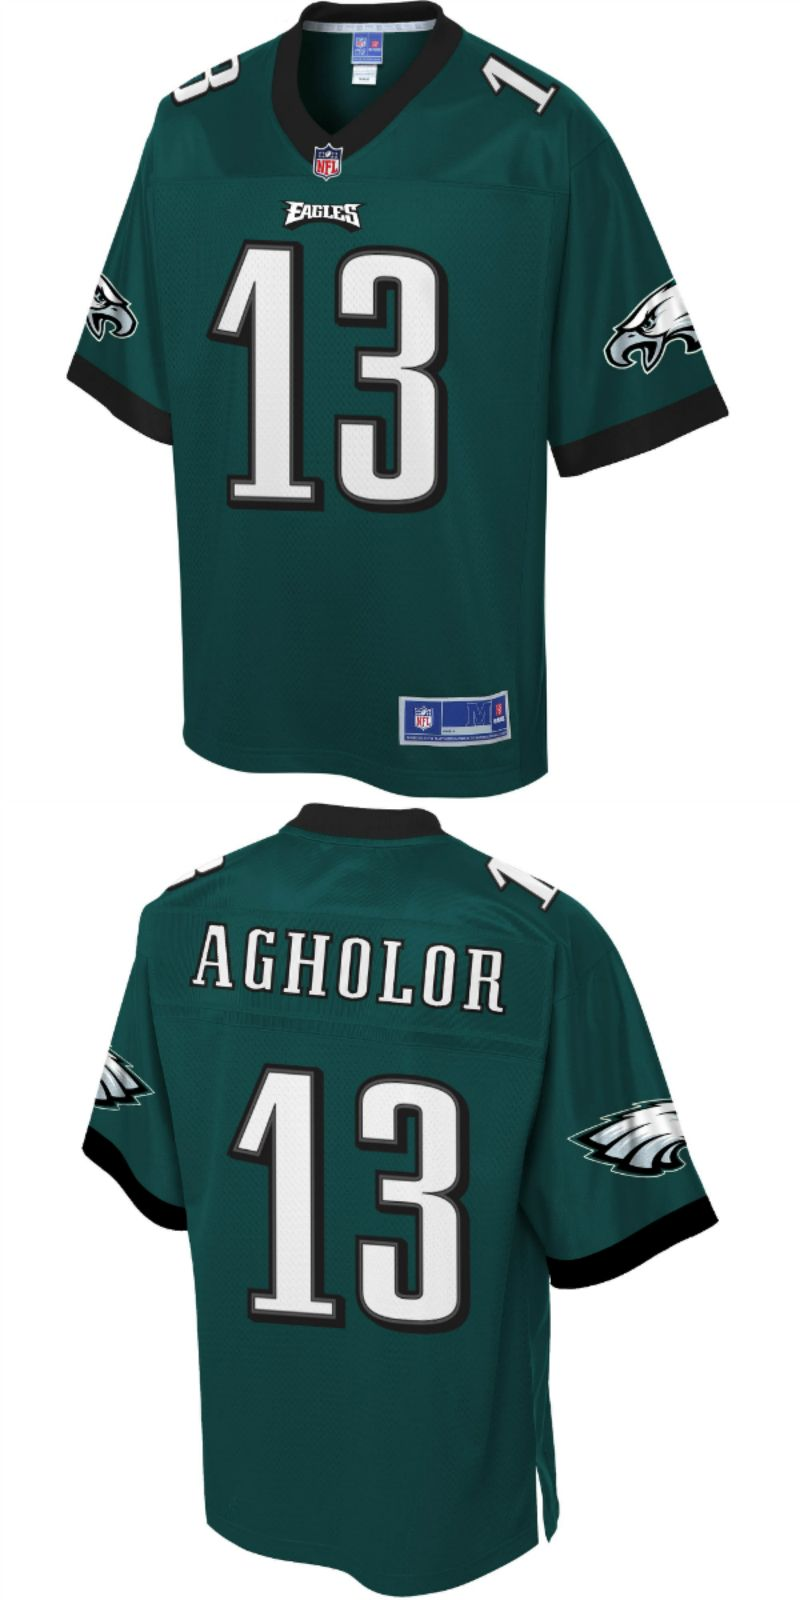 save off 03d83 8fac3 UP TO 70% OFF. Nelson Agholor Philadelphia Eagles NFL Pro ...